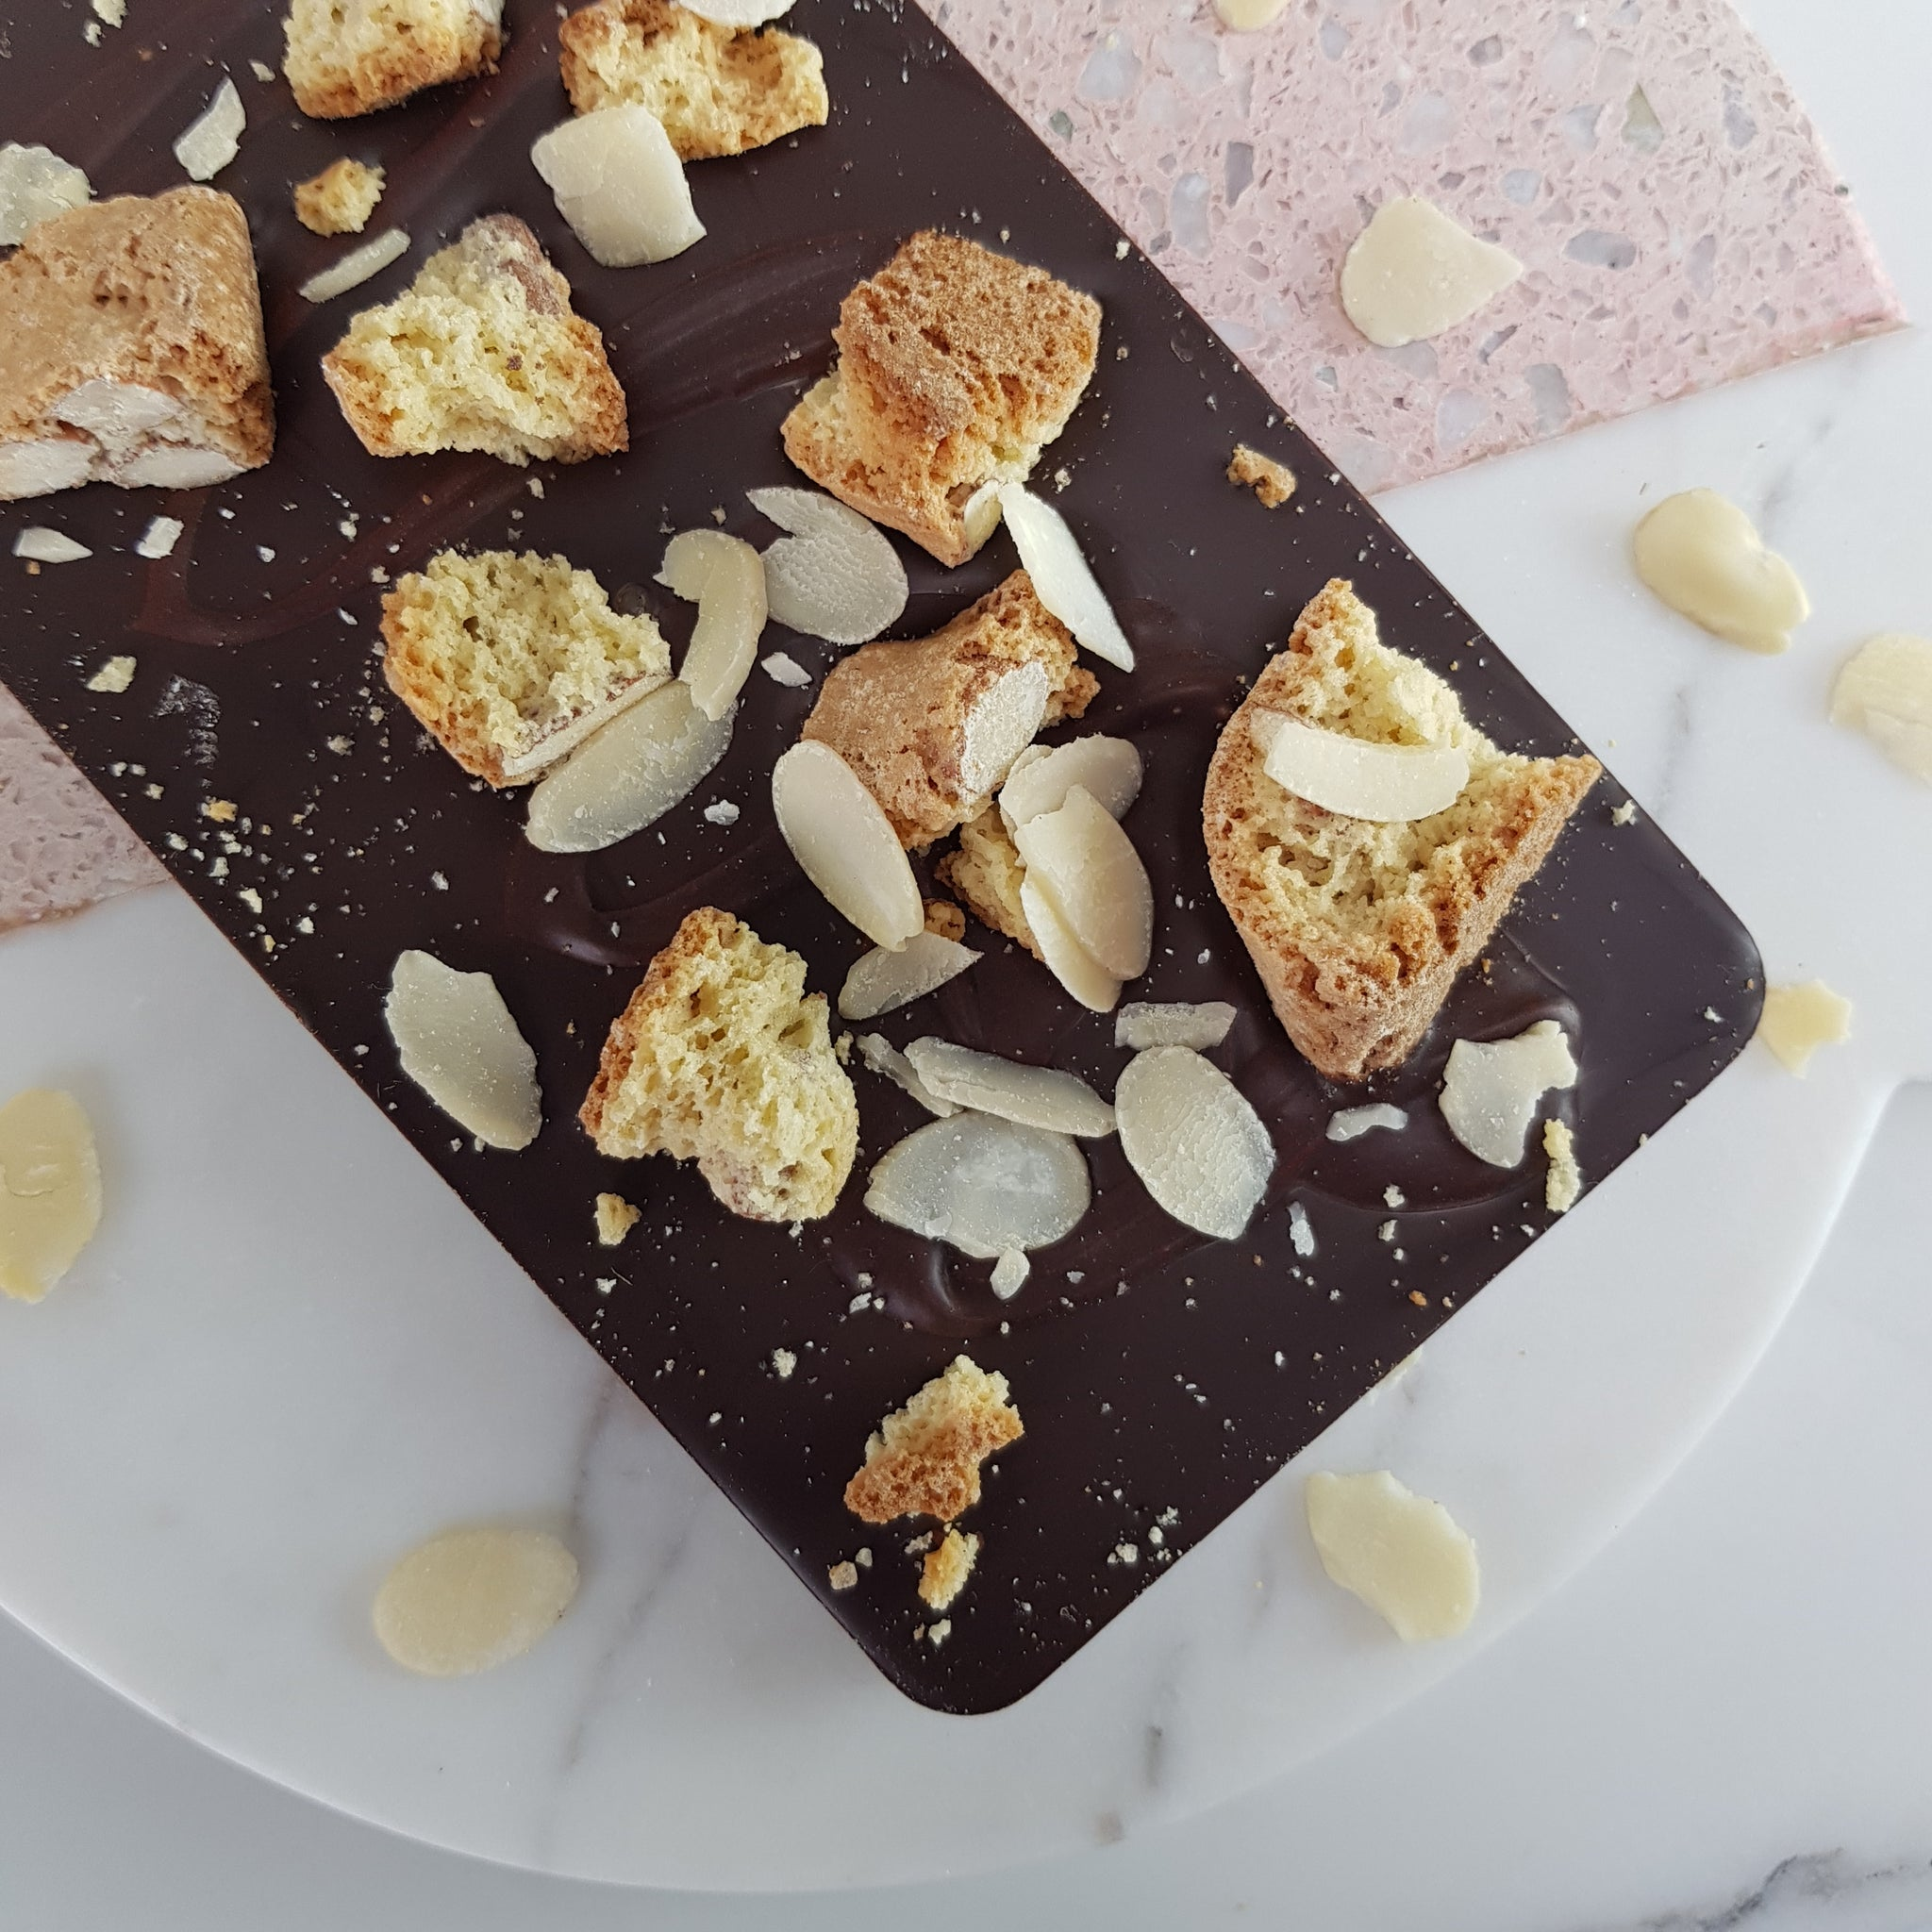 The Italian Biscuit One - The Home Of Fully Loaded boozy Chocolate. Large Slabbs of boozy chocolate with a variety of alcoholic ganaches; gin, rum, whisky, amaretto, baileys and toppings. Available as monthly subscriptions.